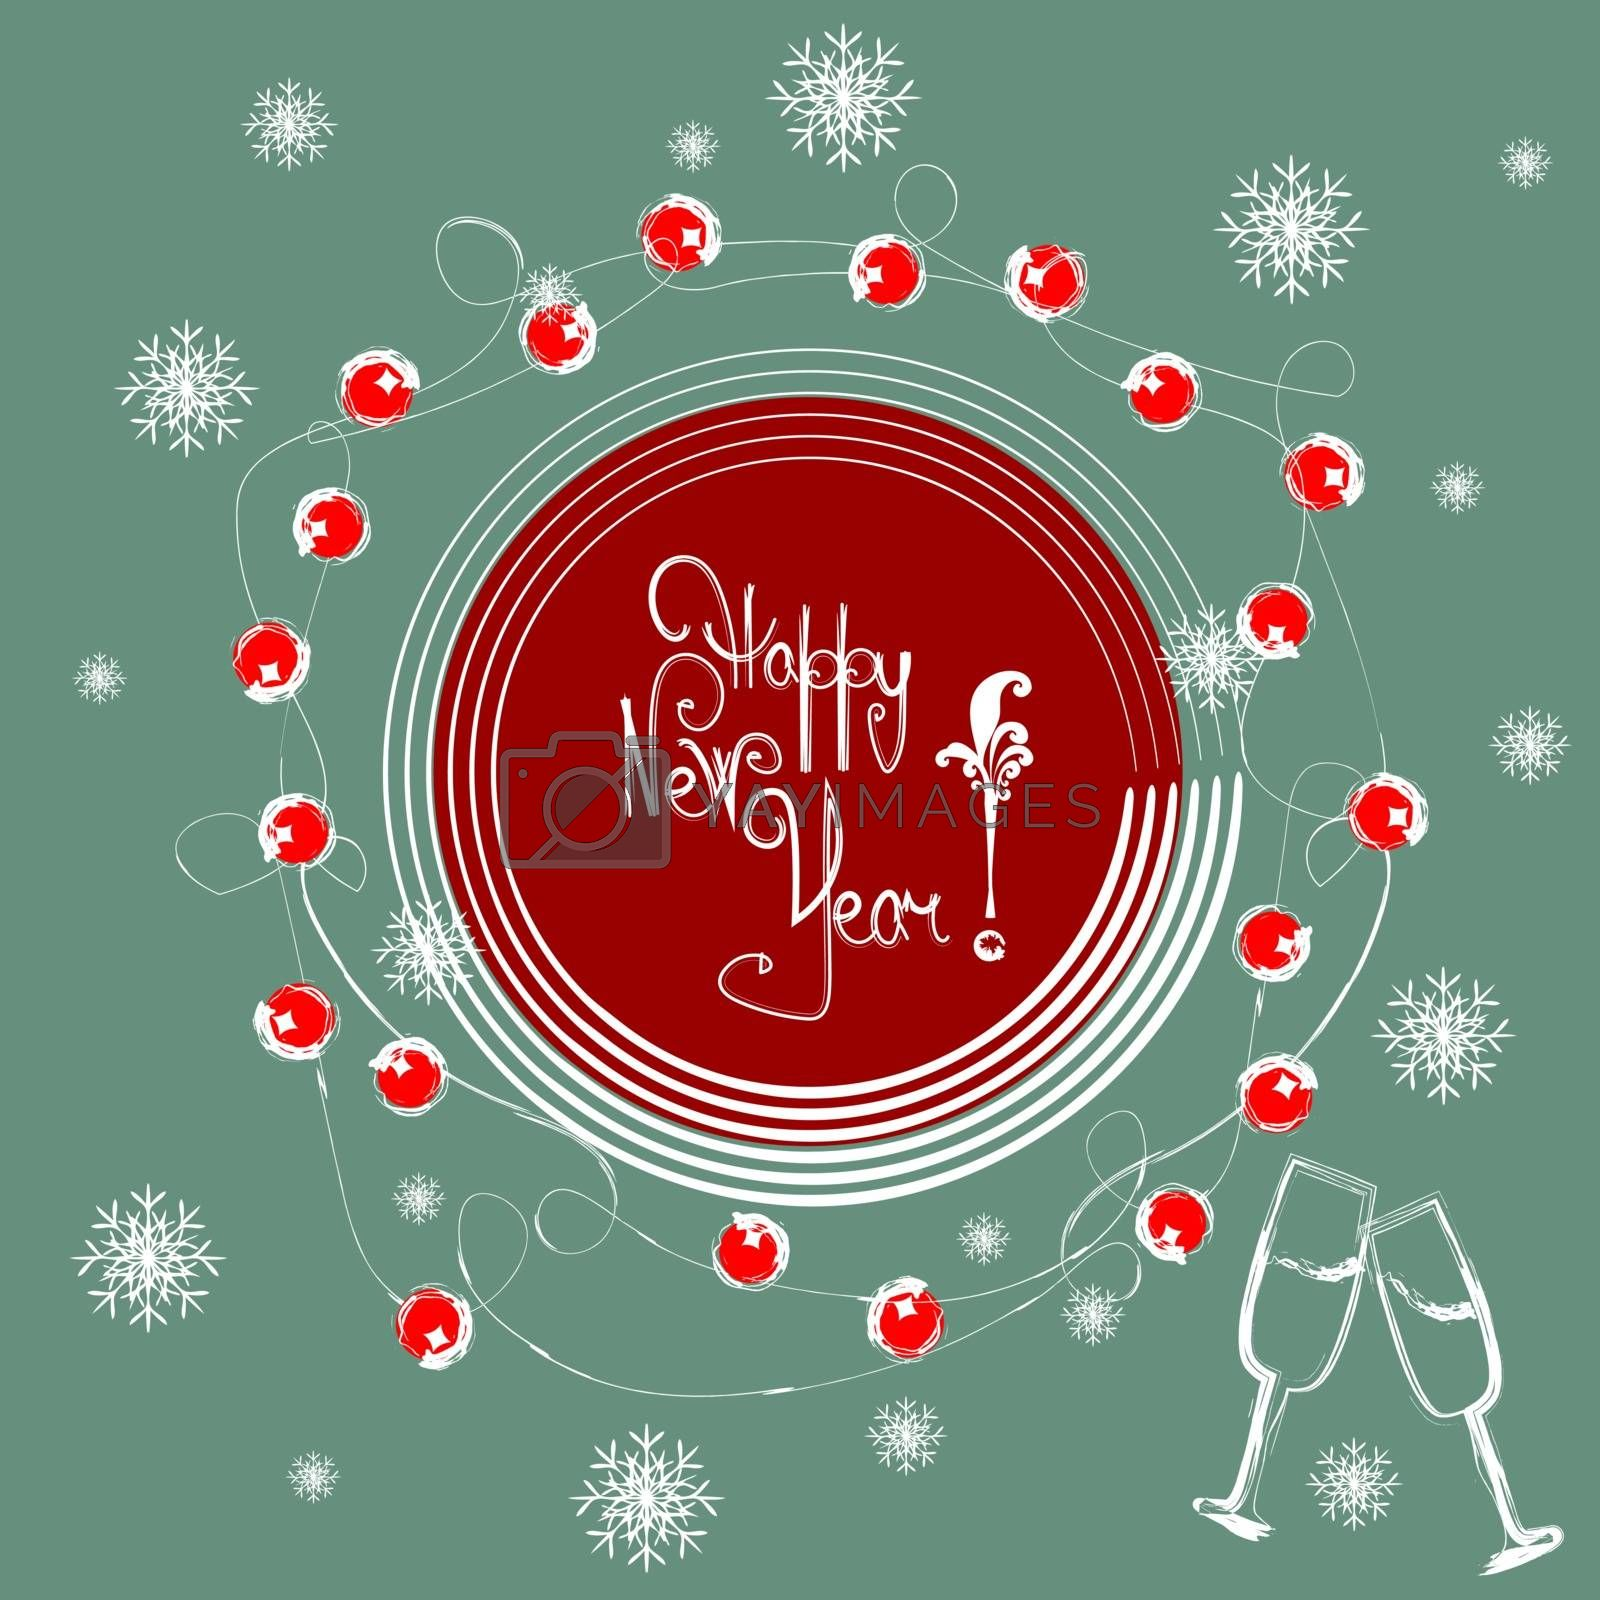 Drawing text `Happy New Year!` in red circle on turquoise background with flying snowflakes and champagne glasses